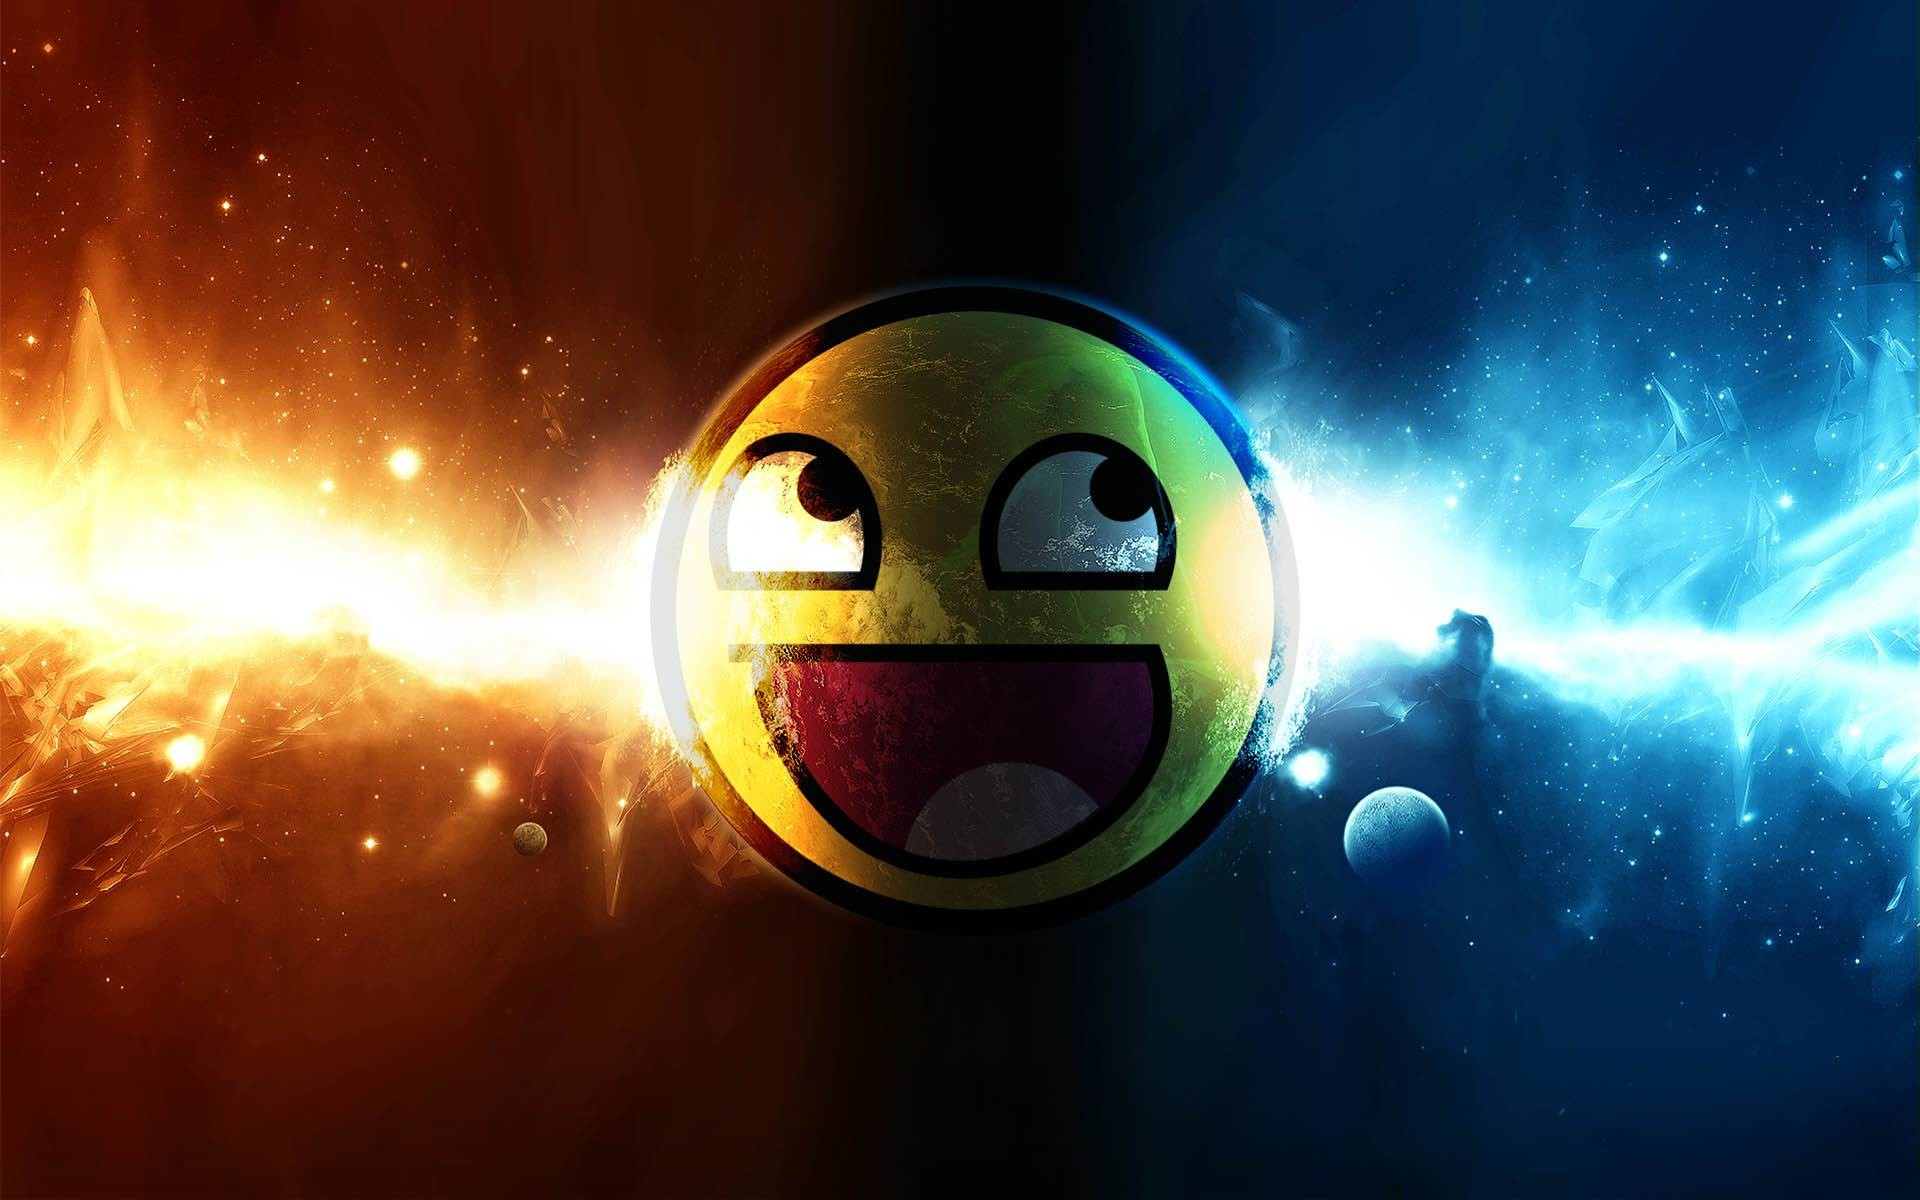 Wallpaper 1 of 1 – Awesome Cool 3D Smiley Background Free Wallpapers .